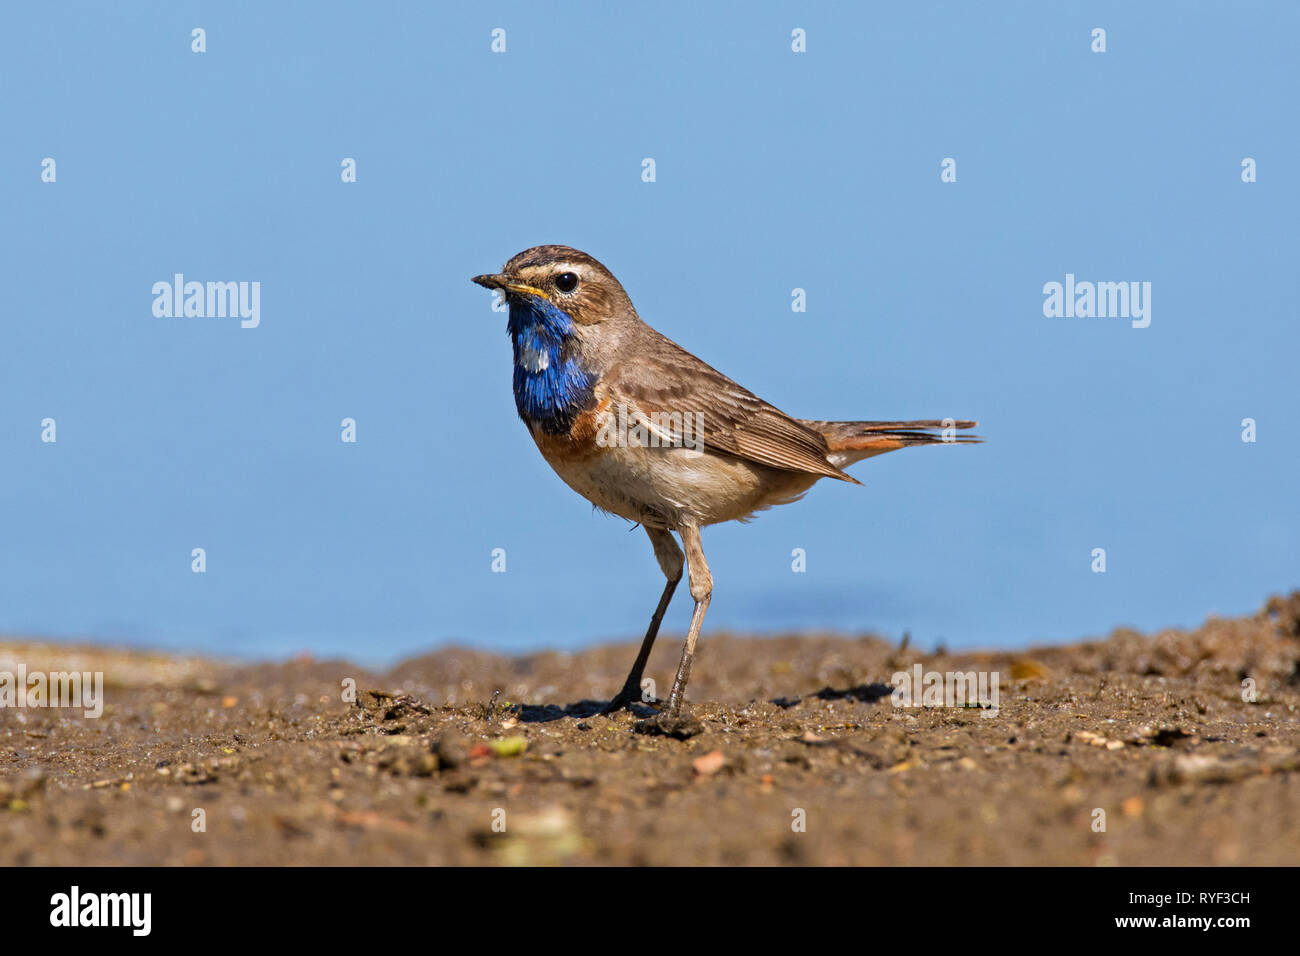 White-spotted bluethroat (Luscinia svecica cyanecula) male on the ground at lake bank in wetland in spring - Stock Image